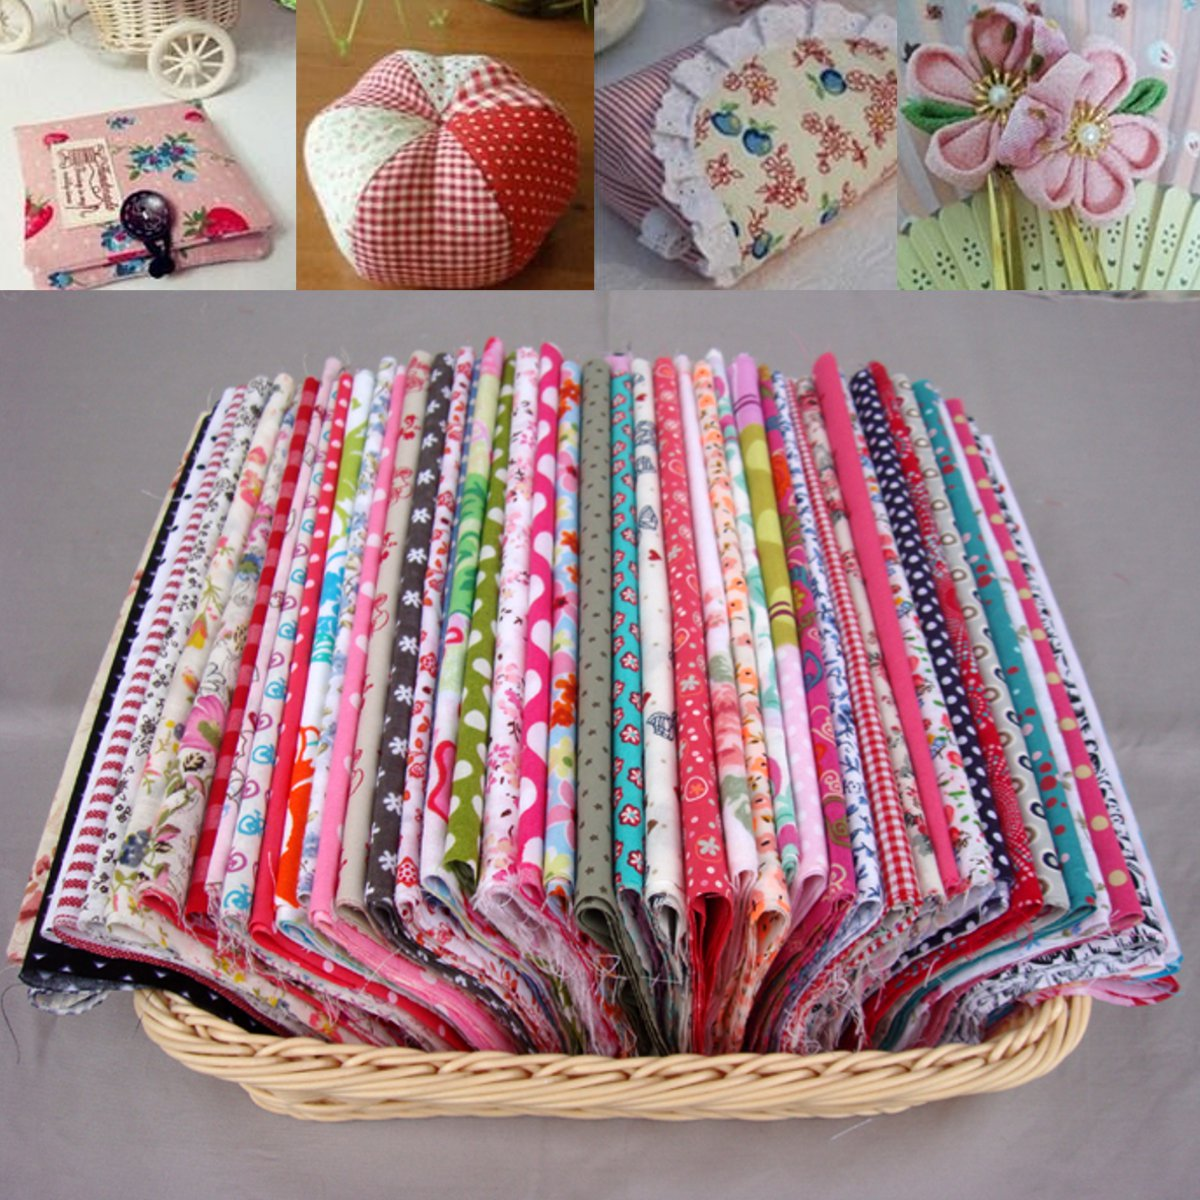 Meigar Pre-Cut Cotton Fabric Assorted Colors Floral Print Charm Quilt DIY Crafts Patchwork DIY Sewing Scrapbooking Quilting Dot Pattern